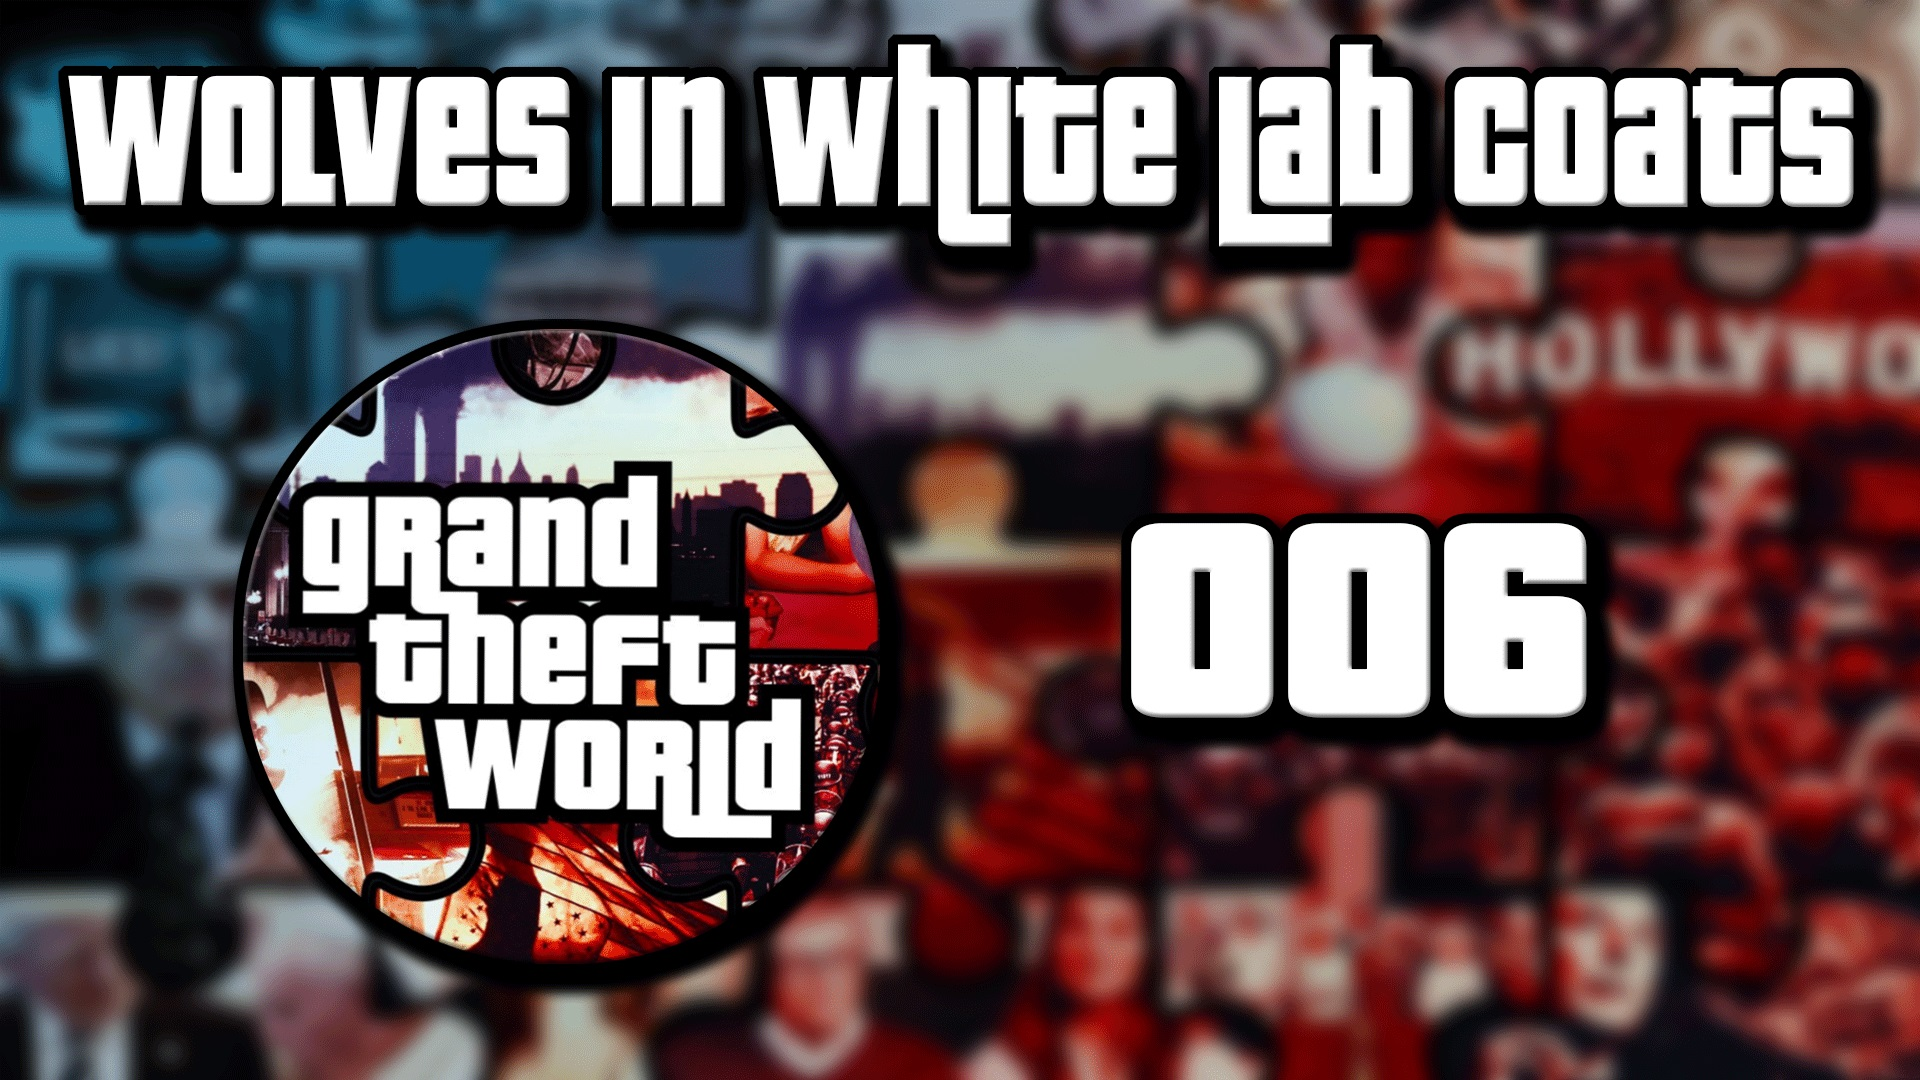 Grand Theft World Podcast 006 | Wolves in White Lab Coats